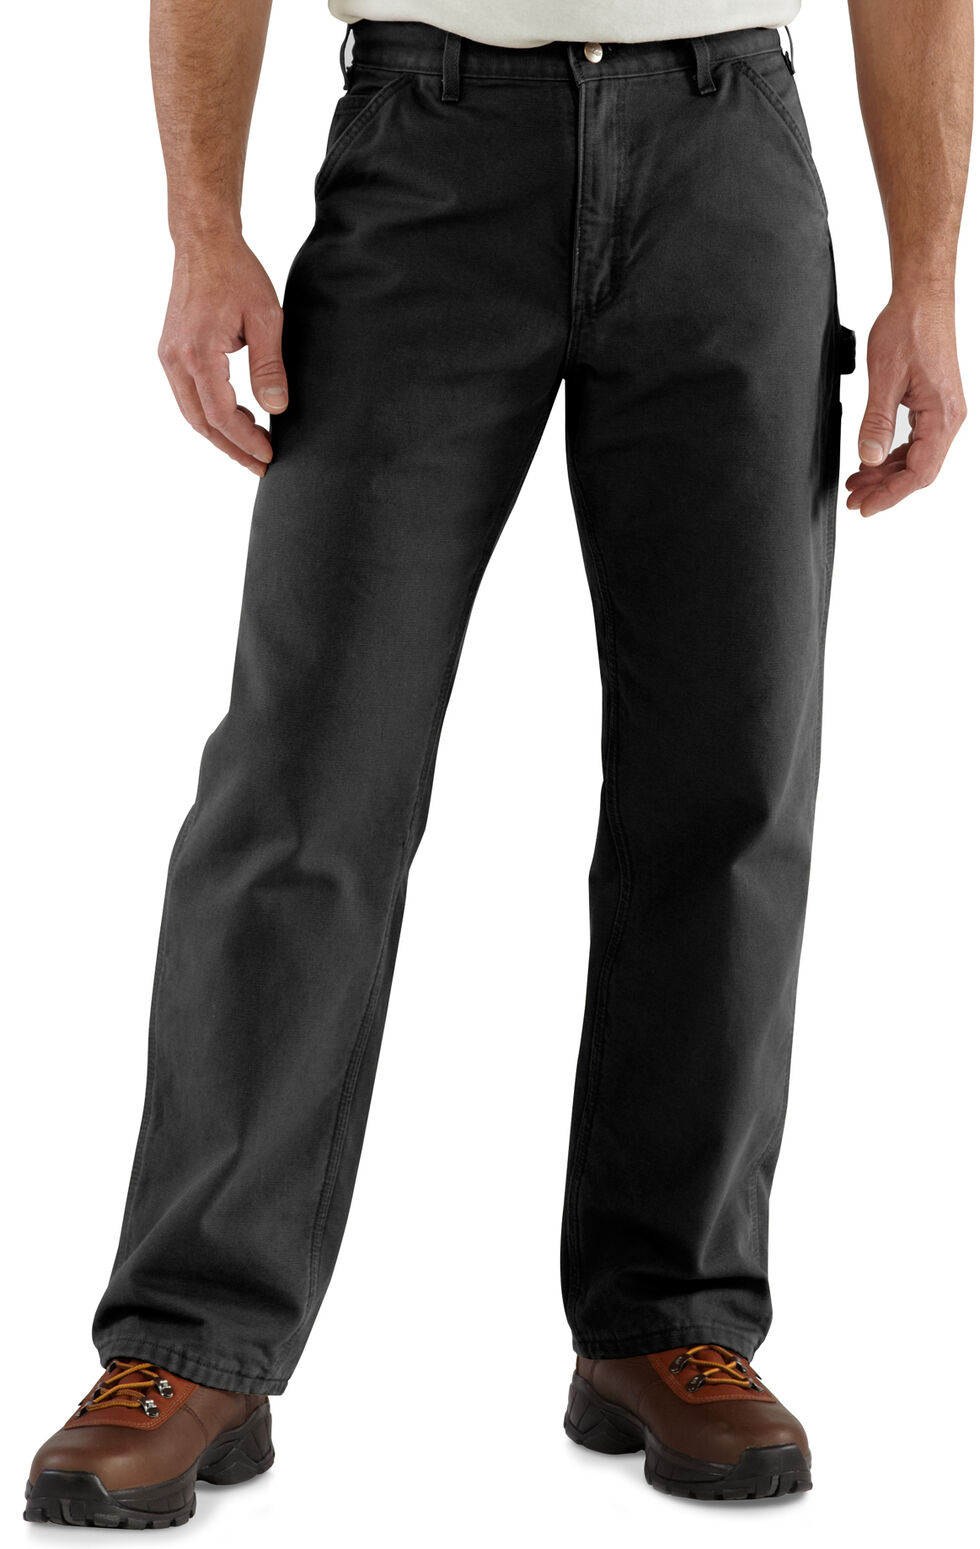 Carhartt Flannel-Lined Washed Duck Dungaree Work Pants, Black, hi-res